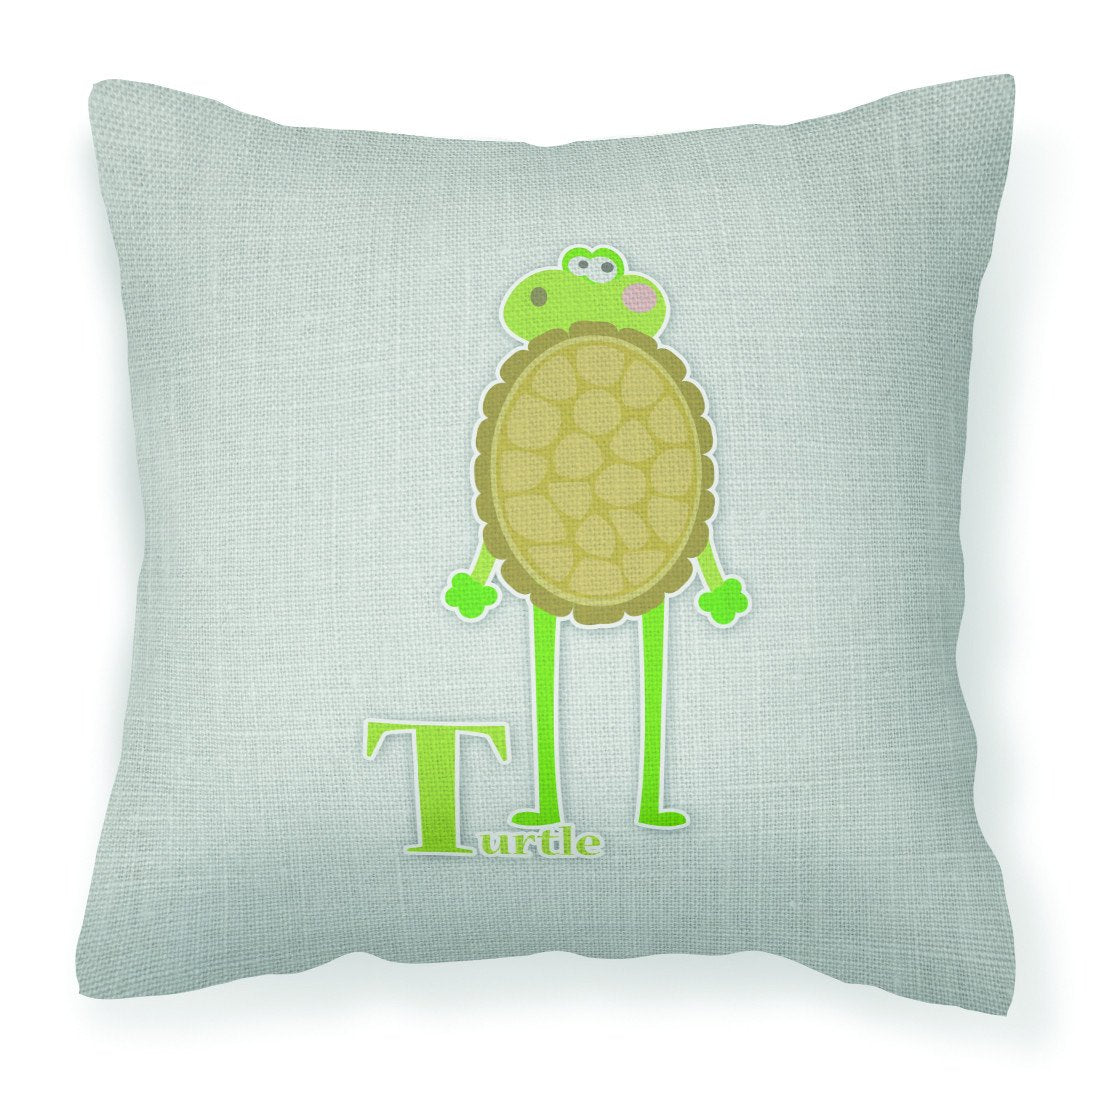 Alphabet T for Turtle Fabric Decorative Pillow BB5745PW1818 by Caroline's Treasures